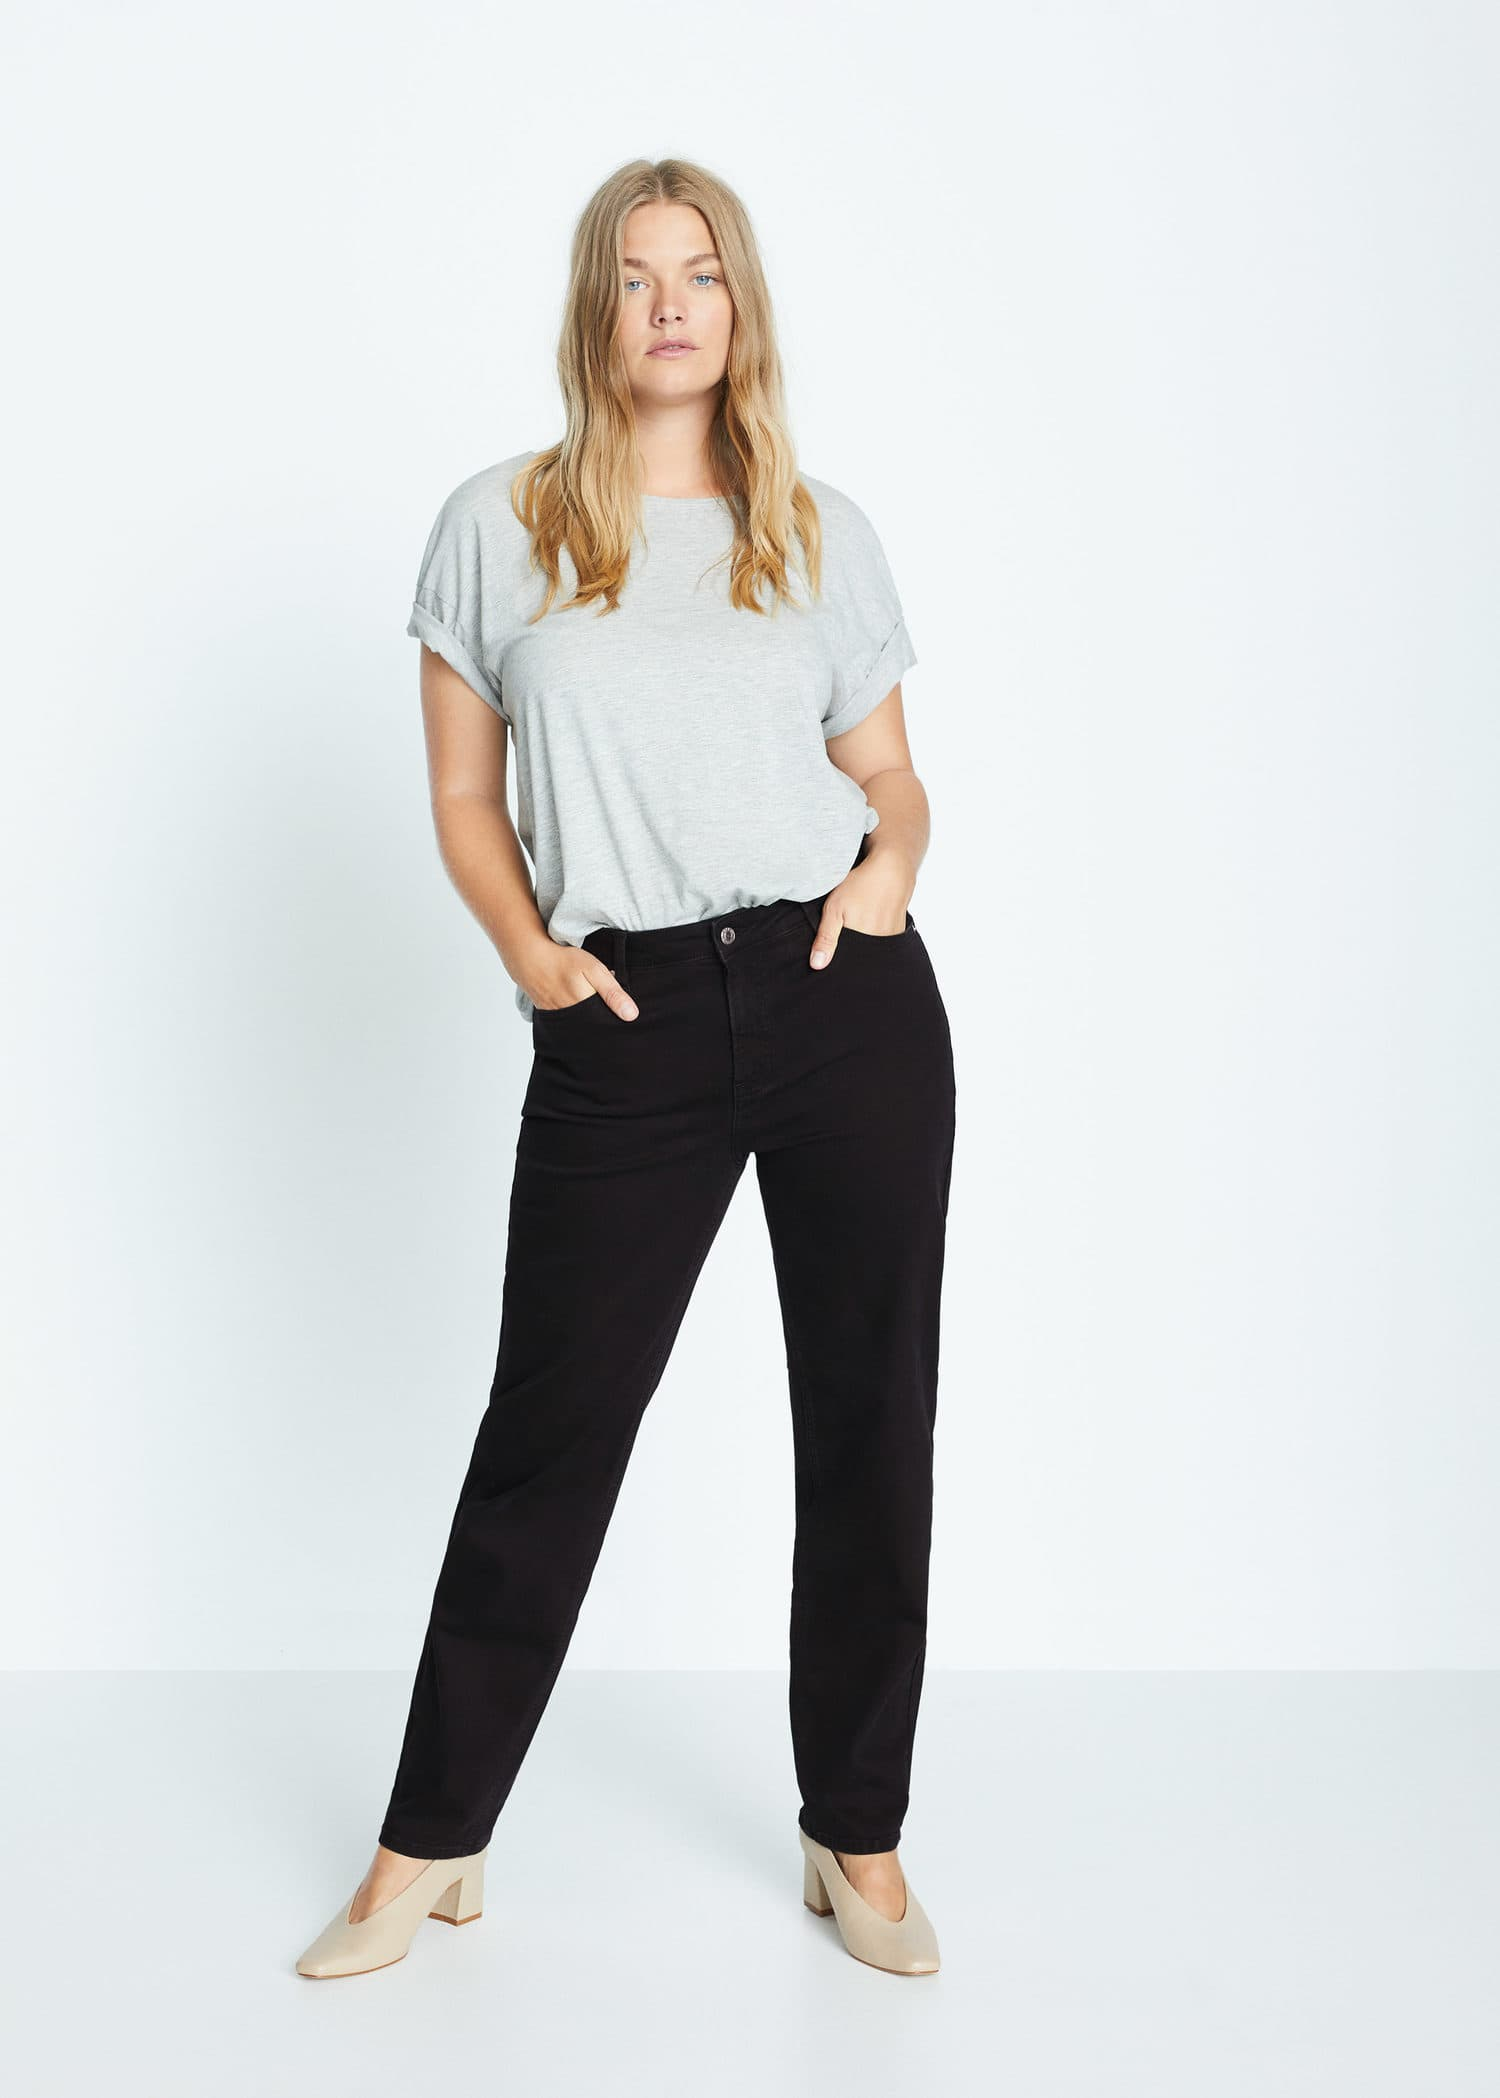 Jeans Relaxed Ely Tallas Grandes Violeta By Mango Espana